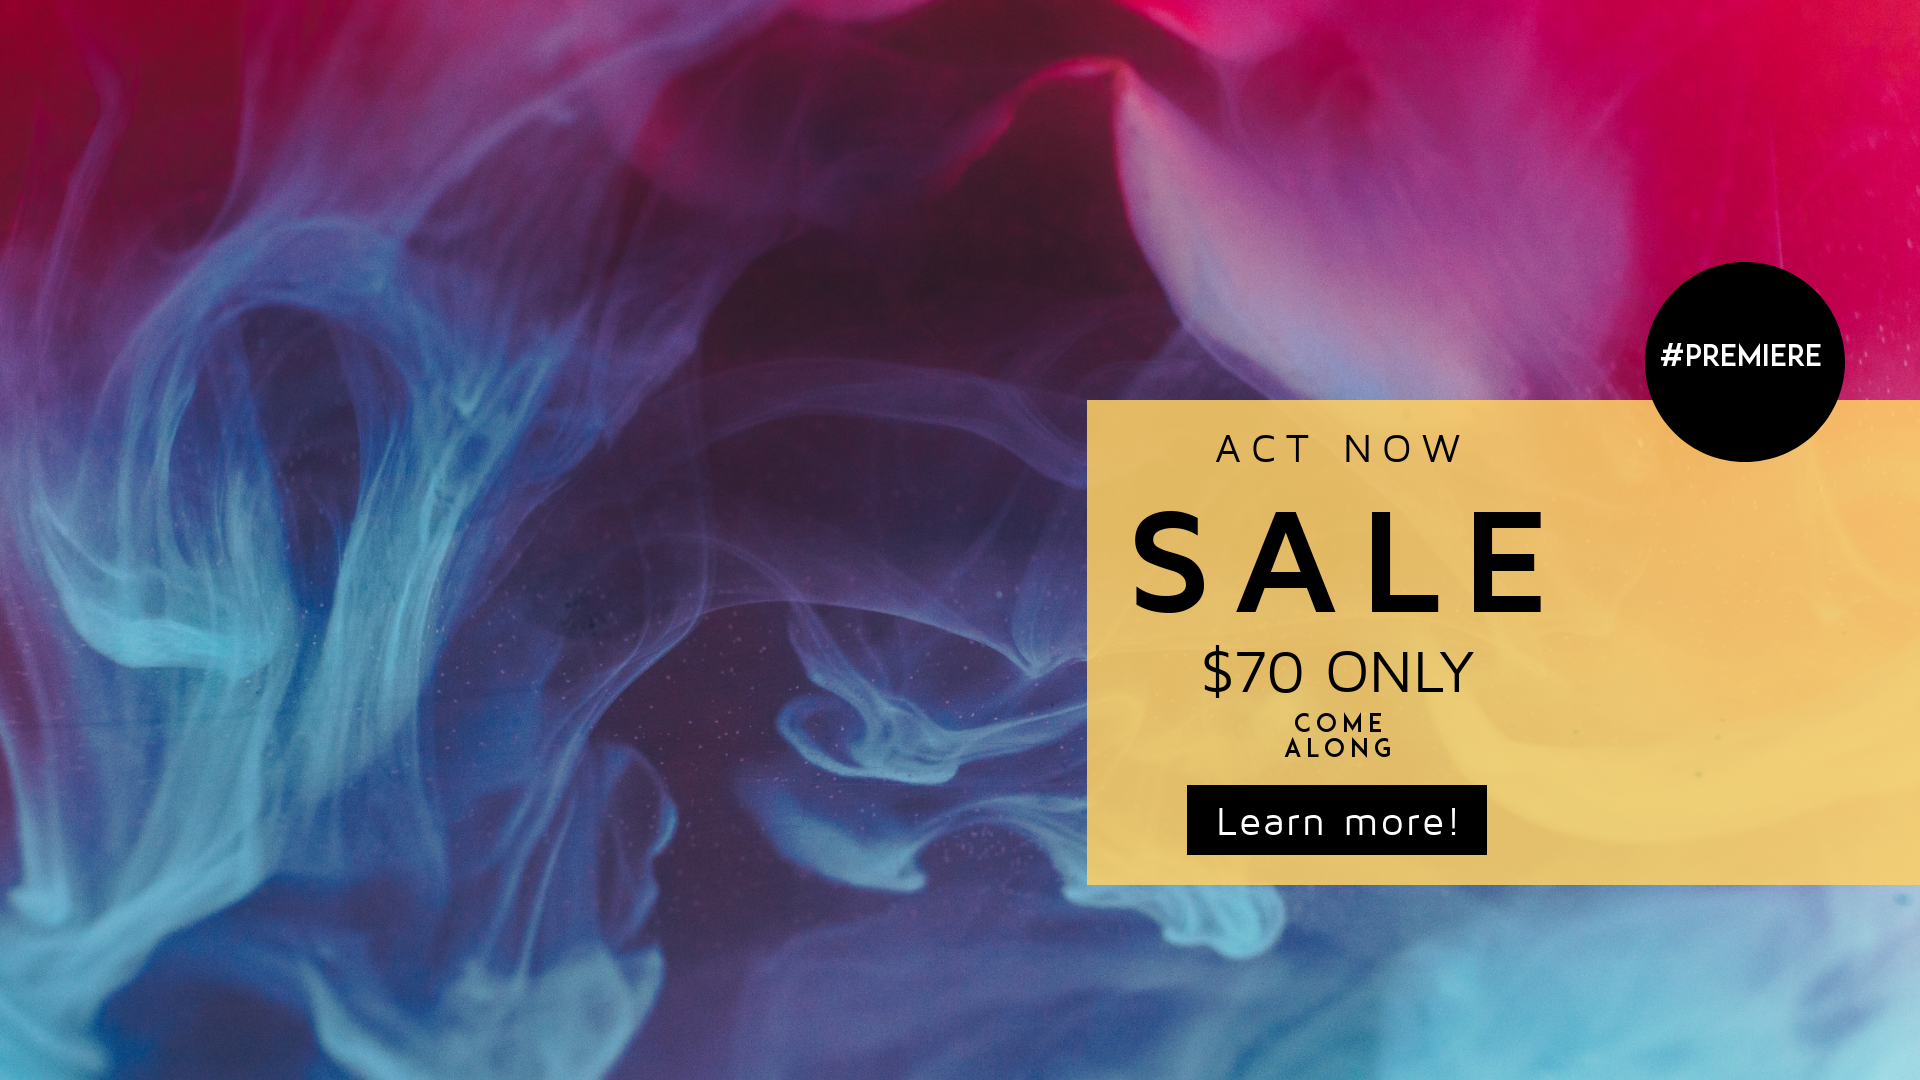 Color,                Chemistry,                Water,                Blue,                Colorful,                Paint,                Composition,                Pink,                Red,                Abstract,                Smoke,                Creative,                Smooth,                 Free Image